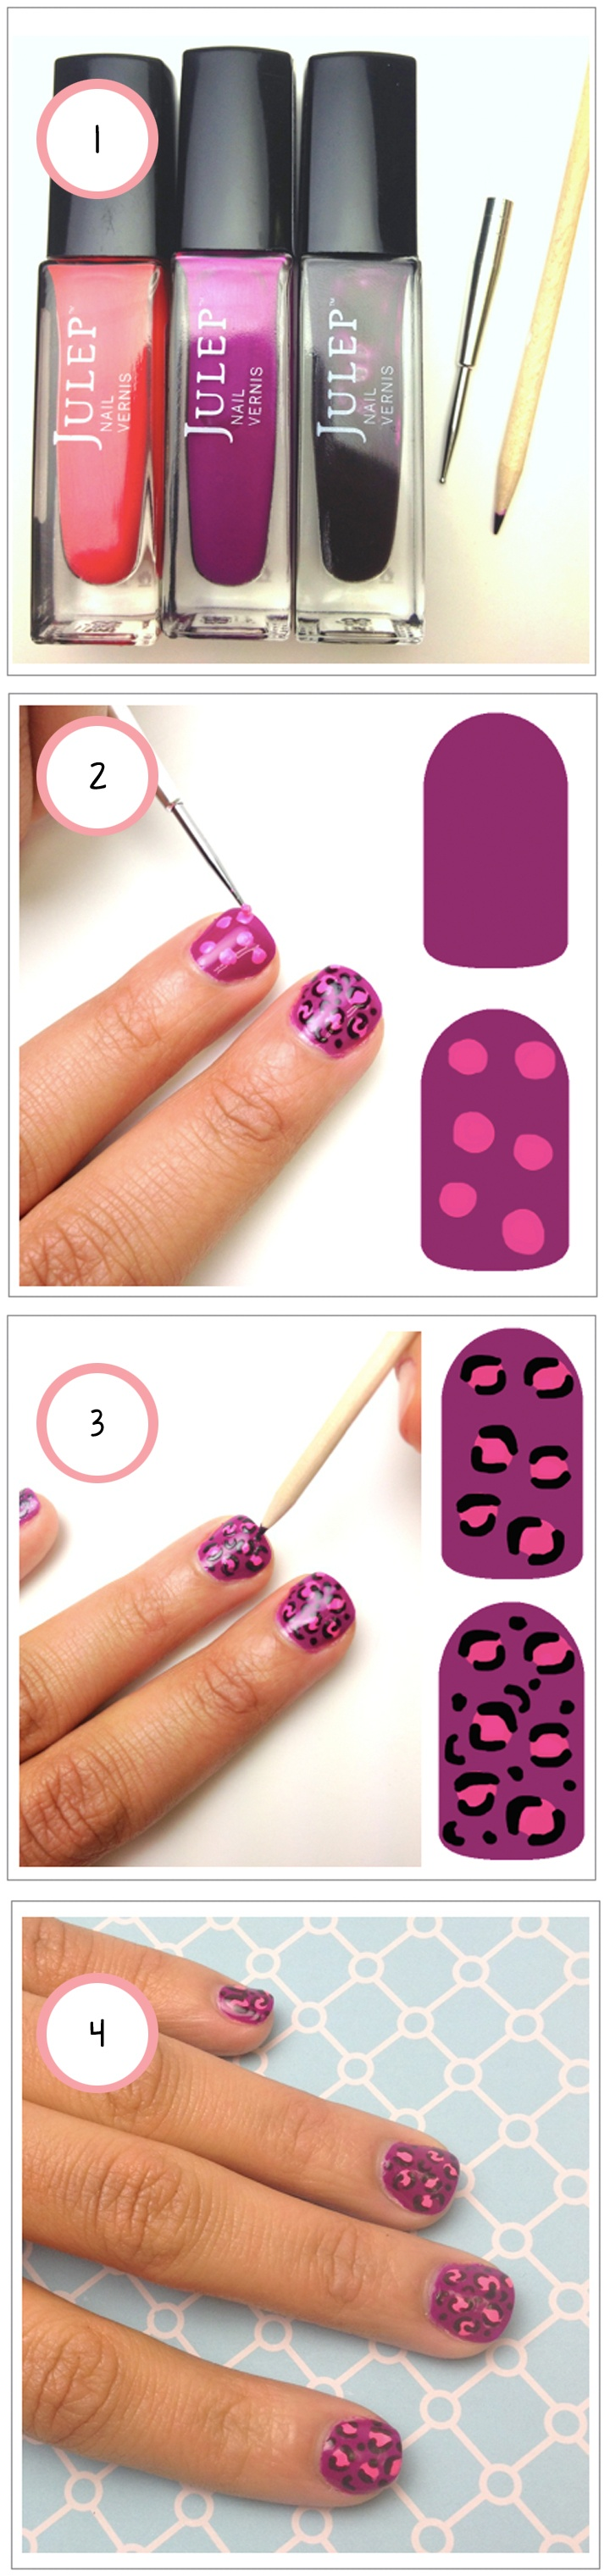 14 best Maquillaje y uñas images on Pinterest | Nail scissors, Make ...